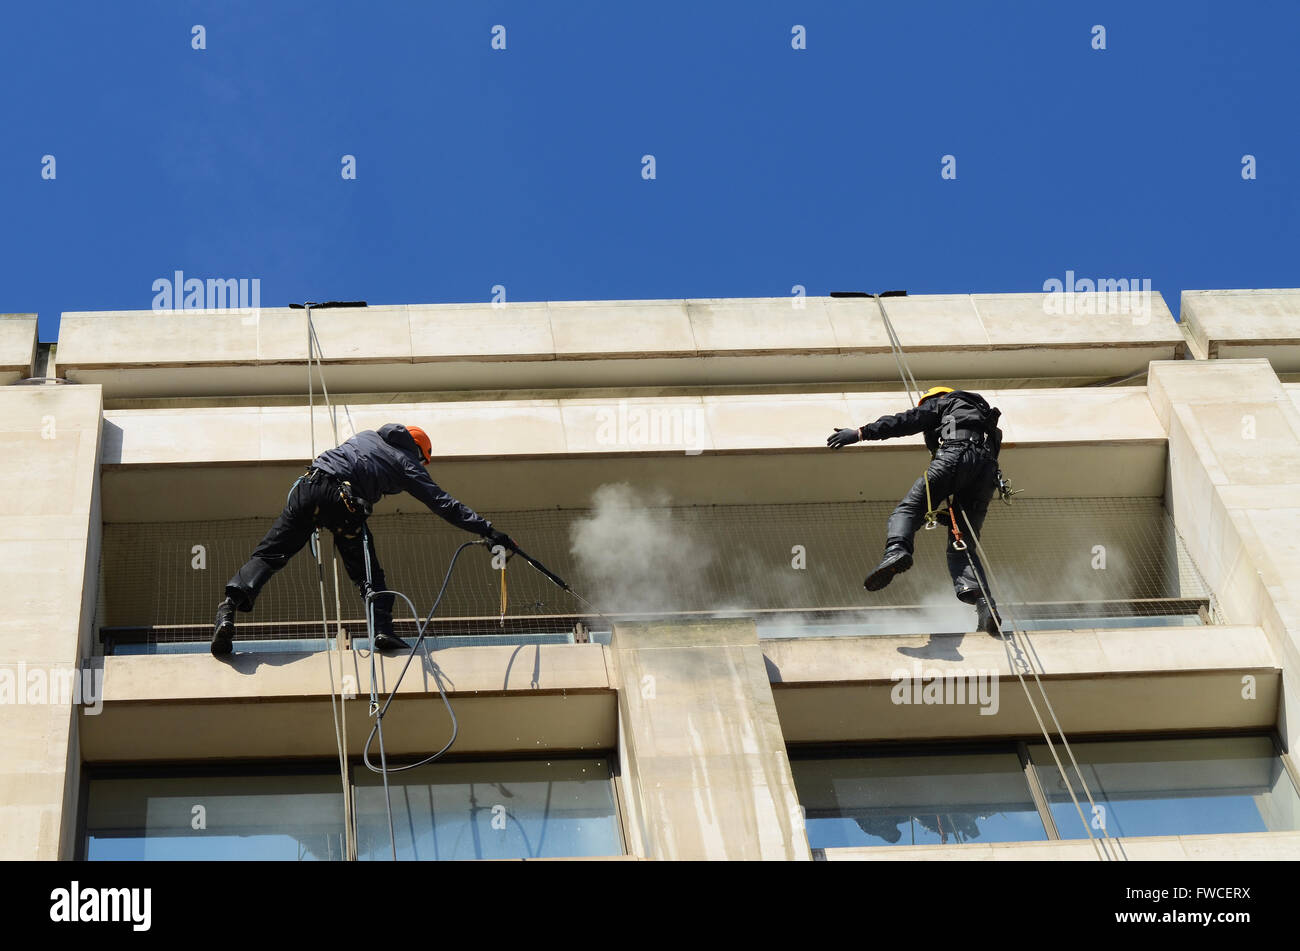 Rope access, abseiling, provides window cleaning access for hard to reach glass and stonework. Male working at height Stock Photo